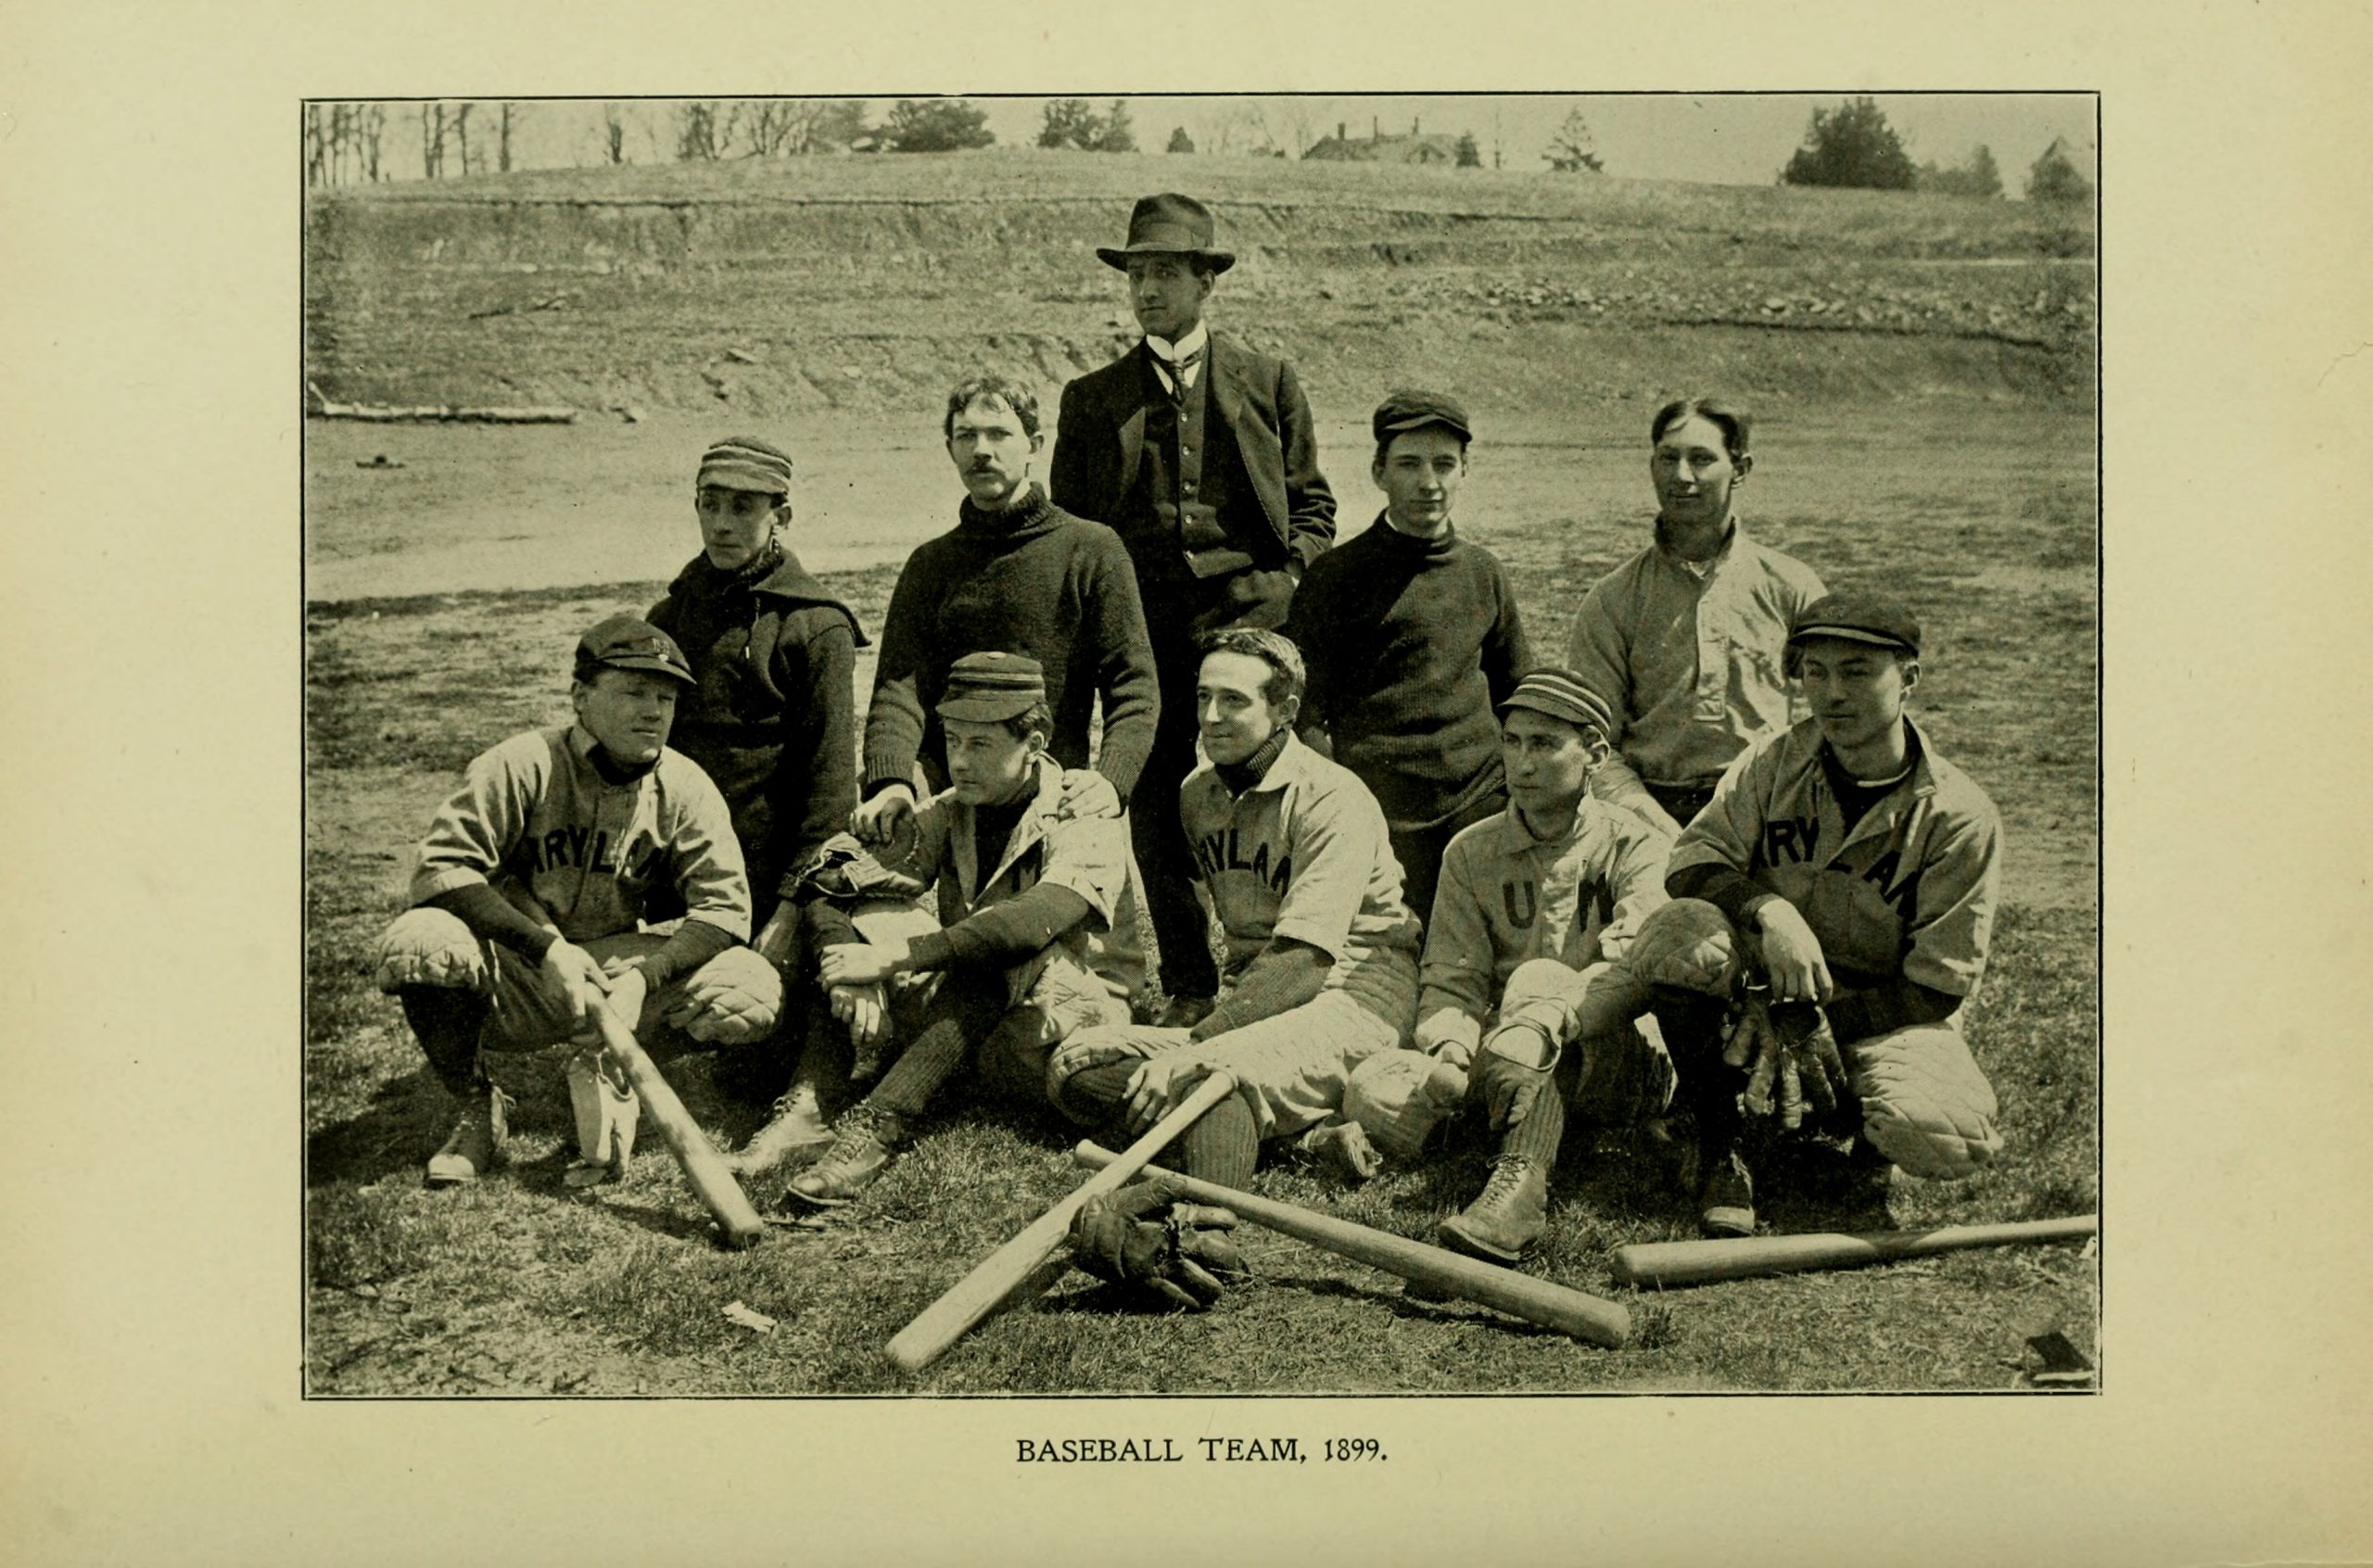 Photograph of 10 men from the 1899 baseball team.